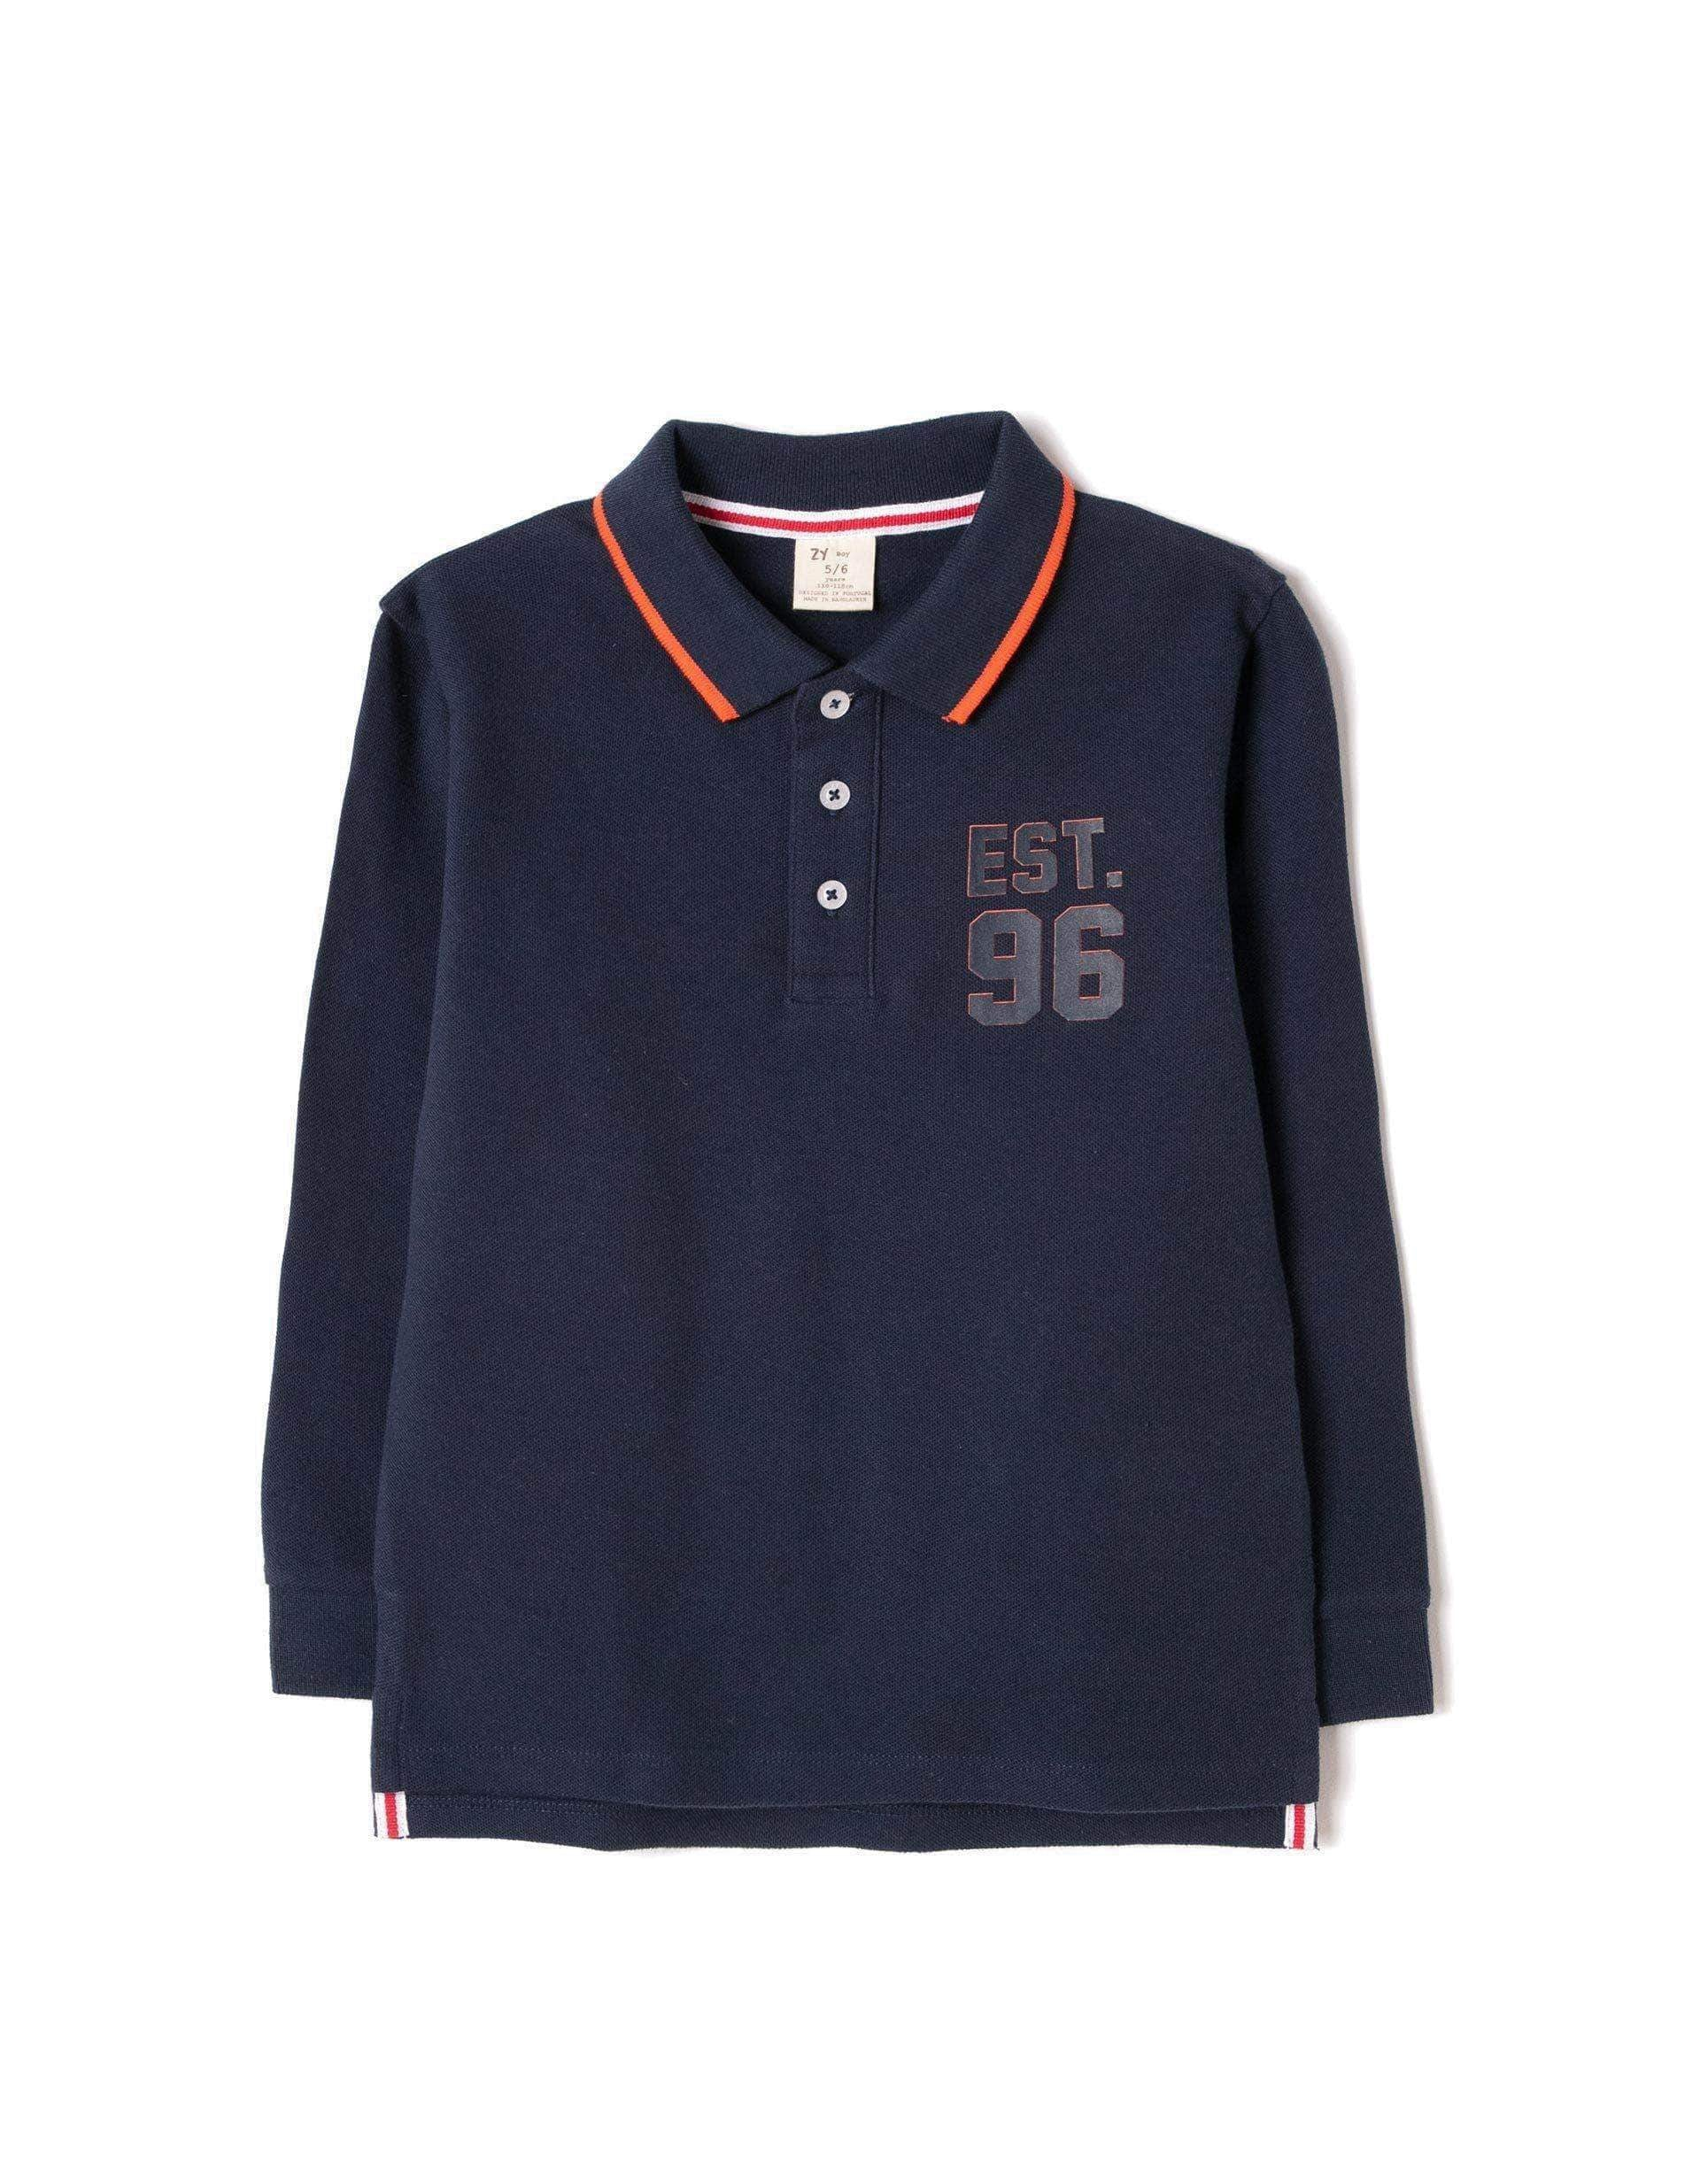 Amazon ZIPPY Polo de Manga Larga, Azul (Dress Blue 19/4024 TC 185), 10 años (Tamaño del Fabricante:9/10) para Niños